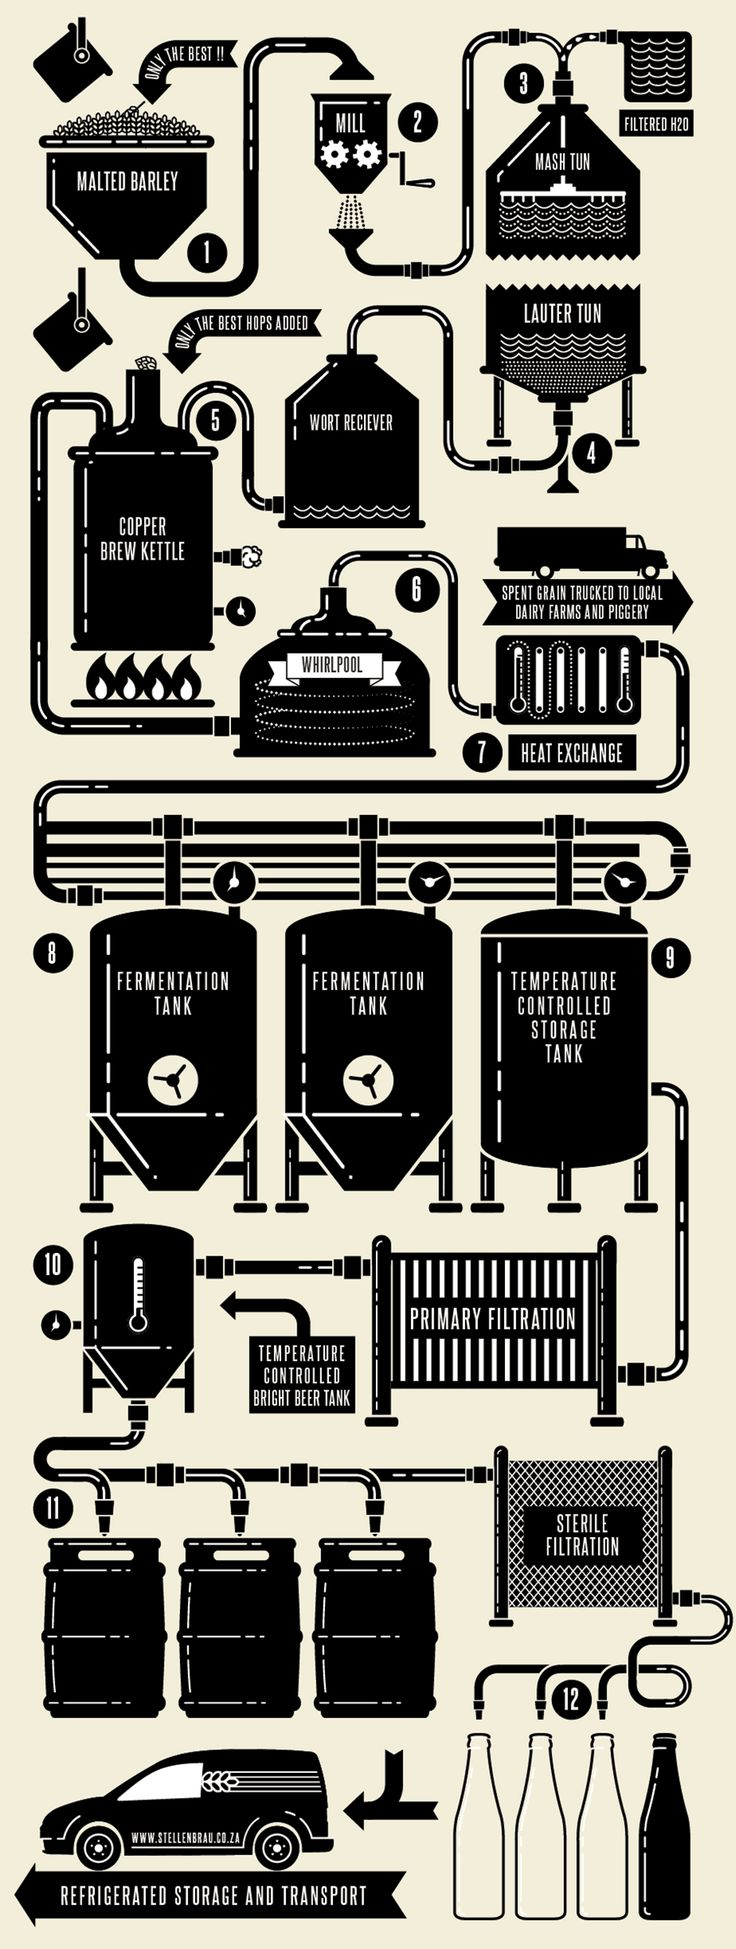 37 best The Brewing Process Illustrated images on Pinterest